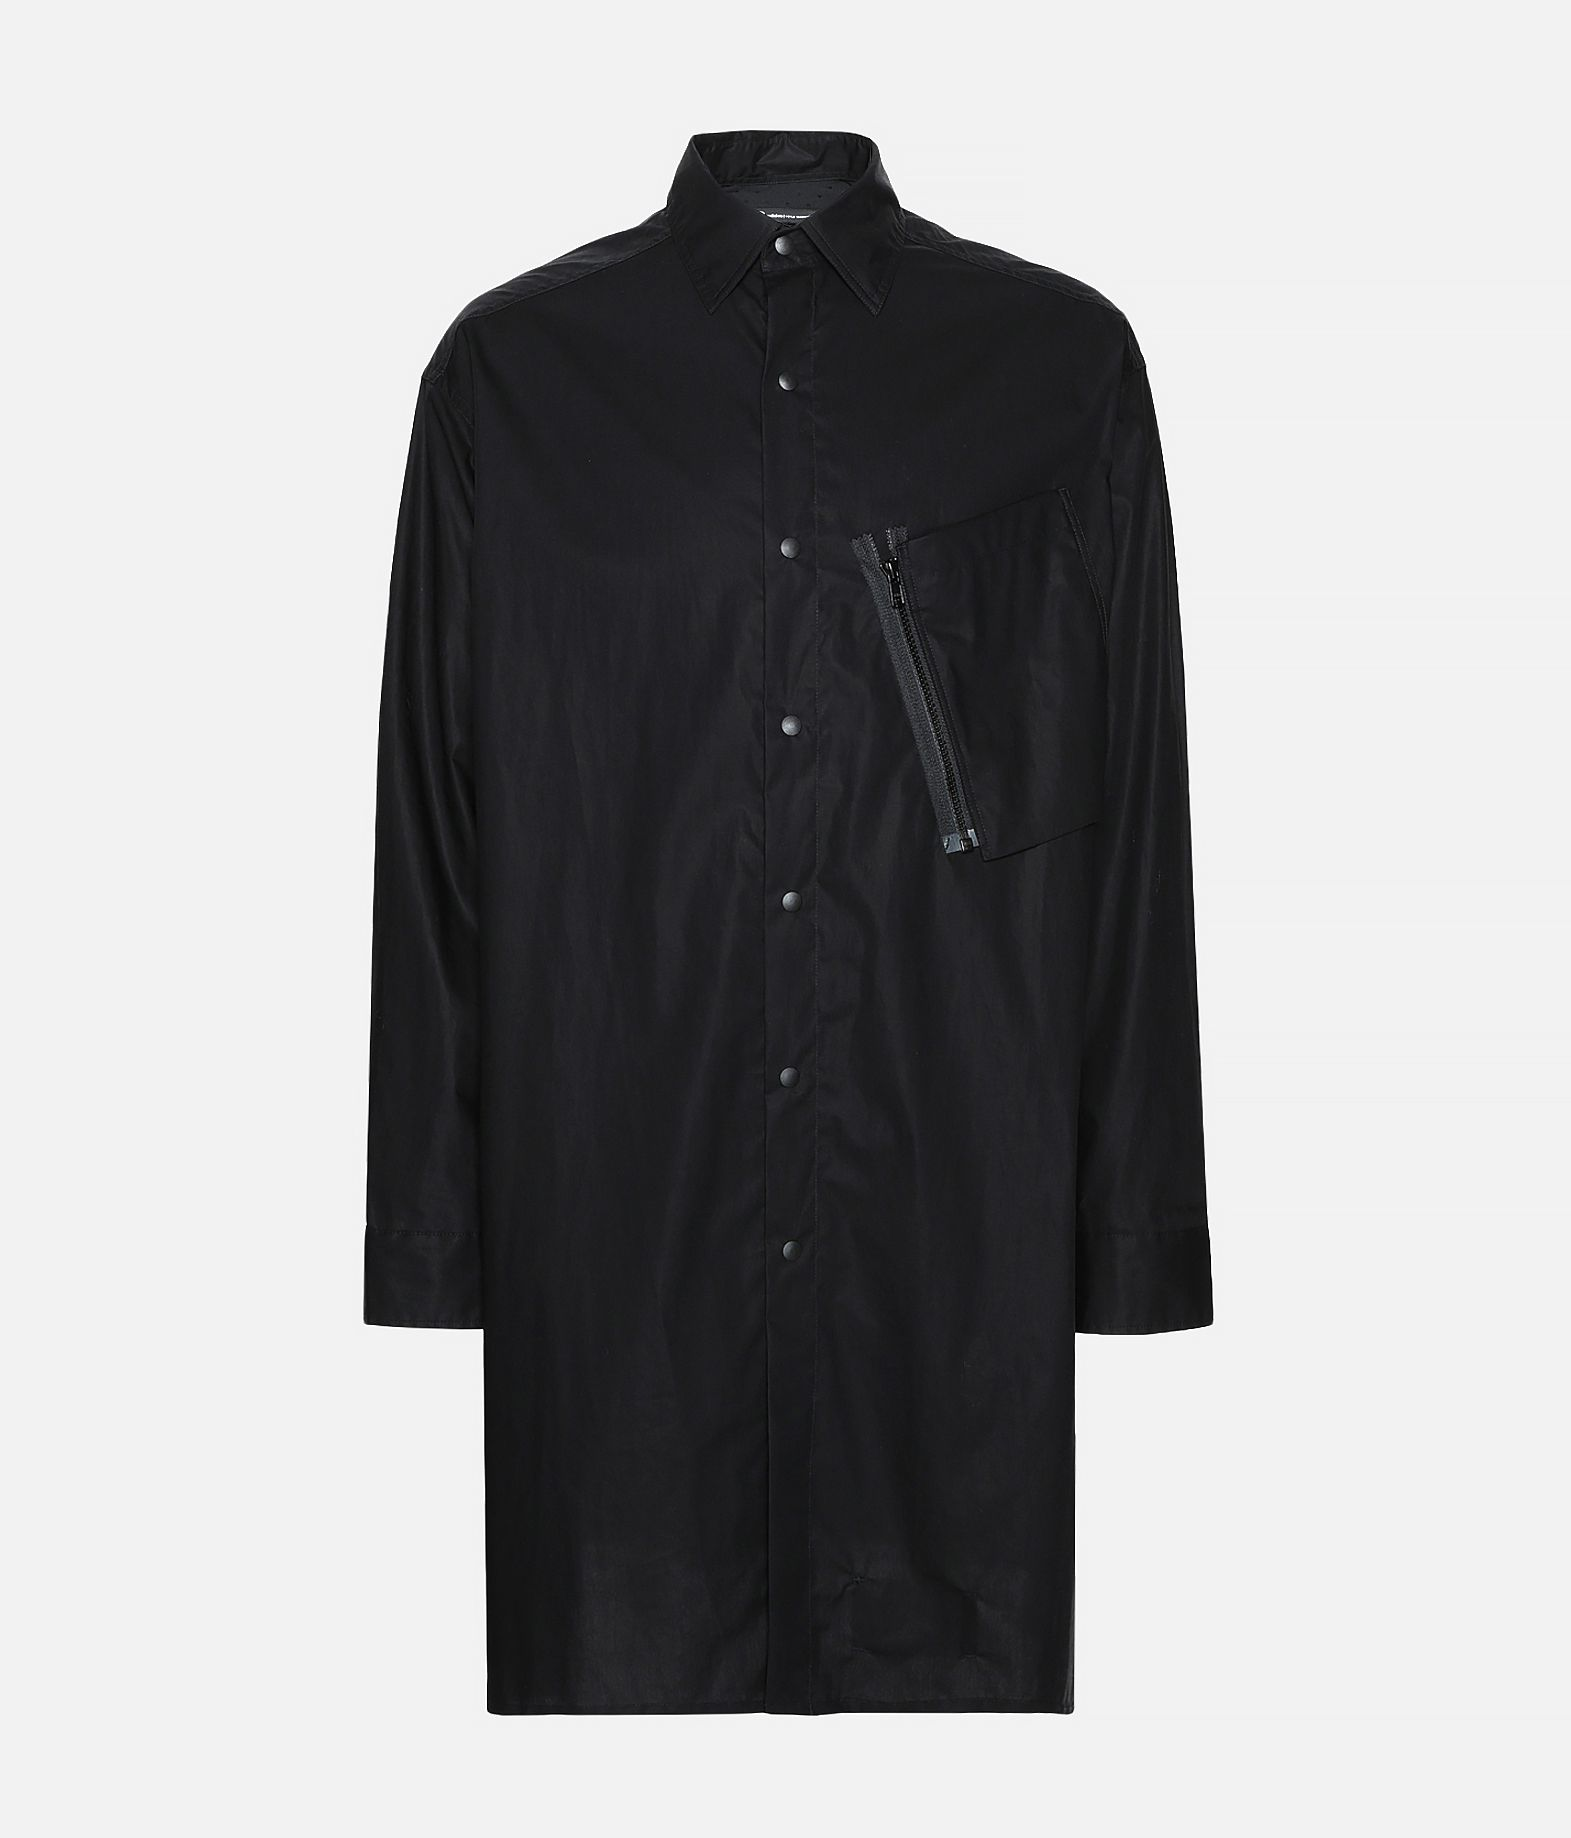 Y-3 Y-3 Tech Long Shirt Long sleeve shirt Man f